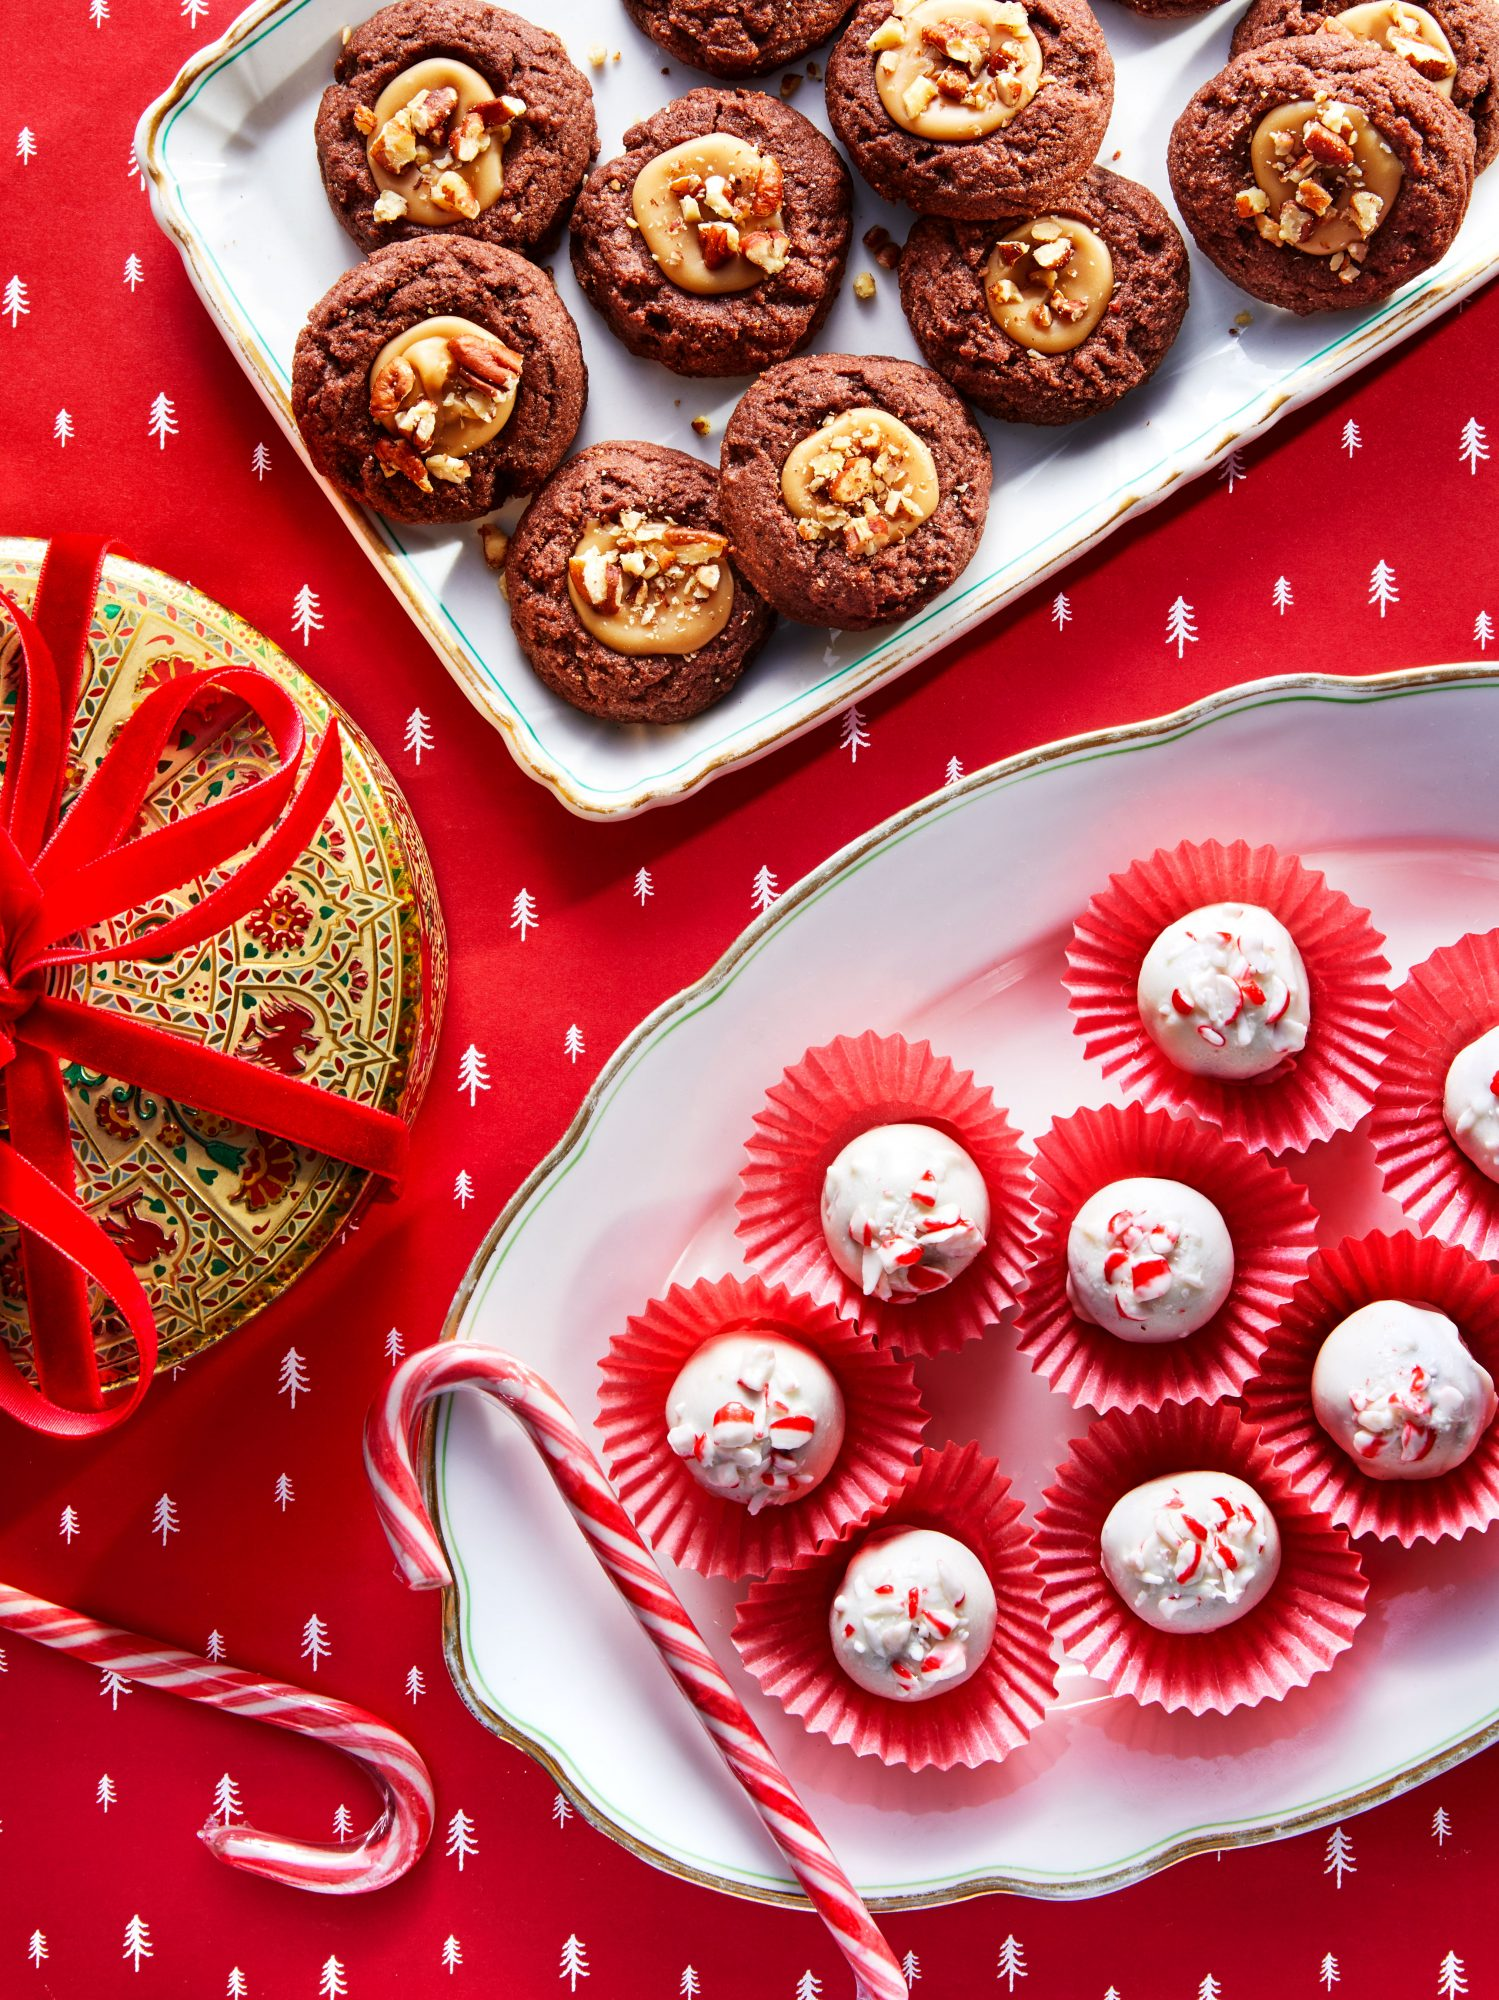 Chocolate Thumbprint Cookies with Praline Filling